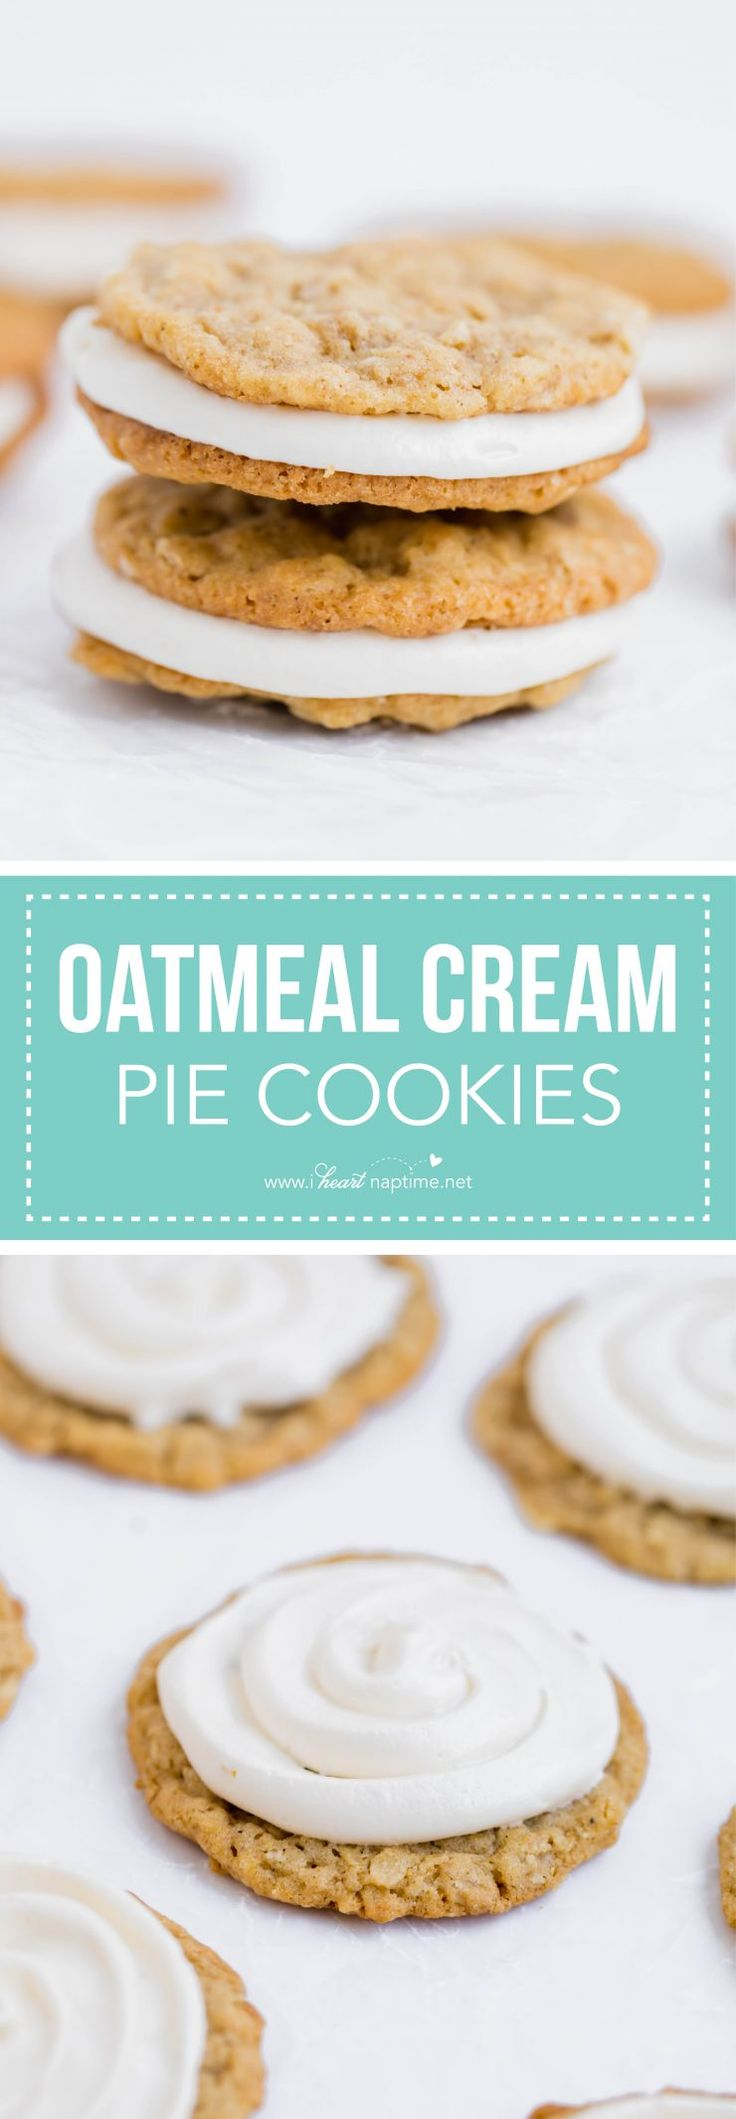 Oatmeal cream pie cookies - I Heart Nap Time